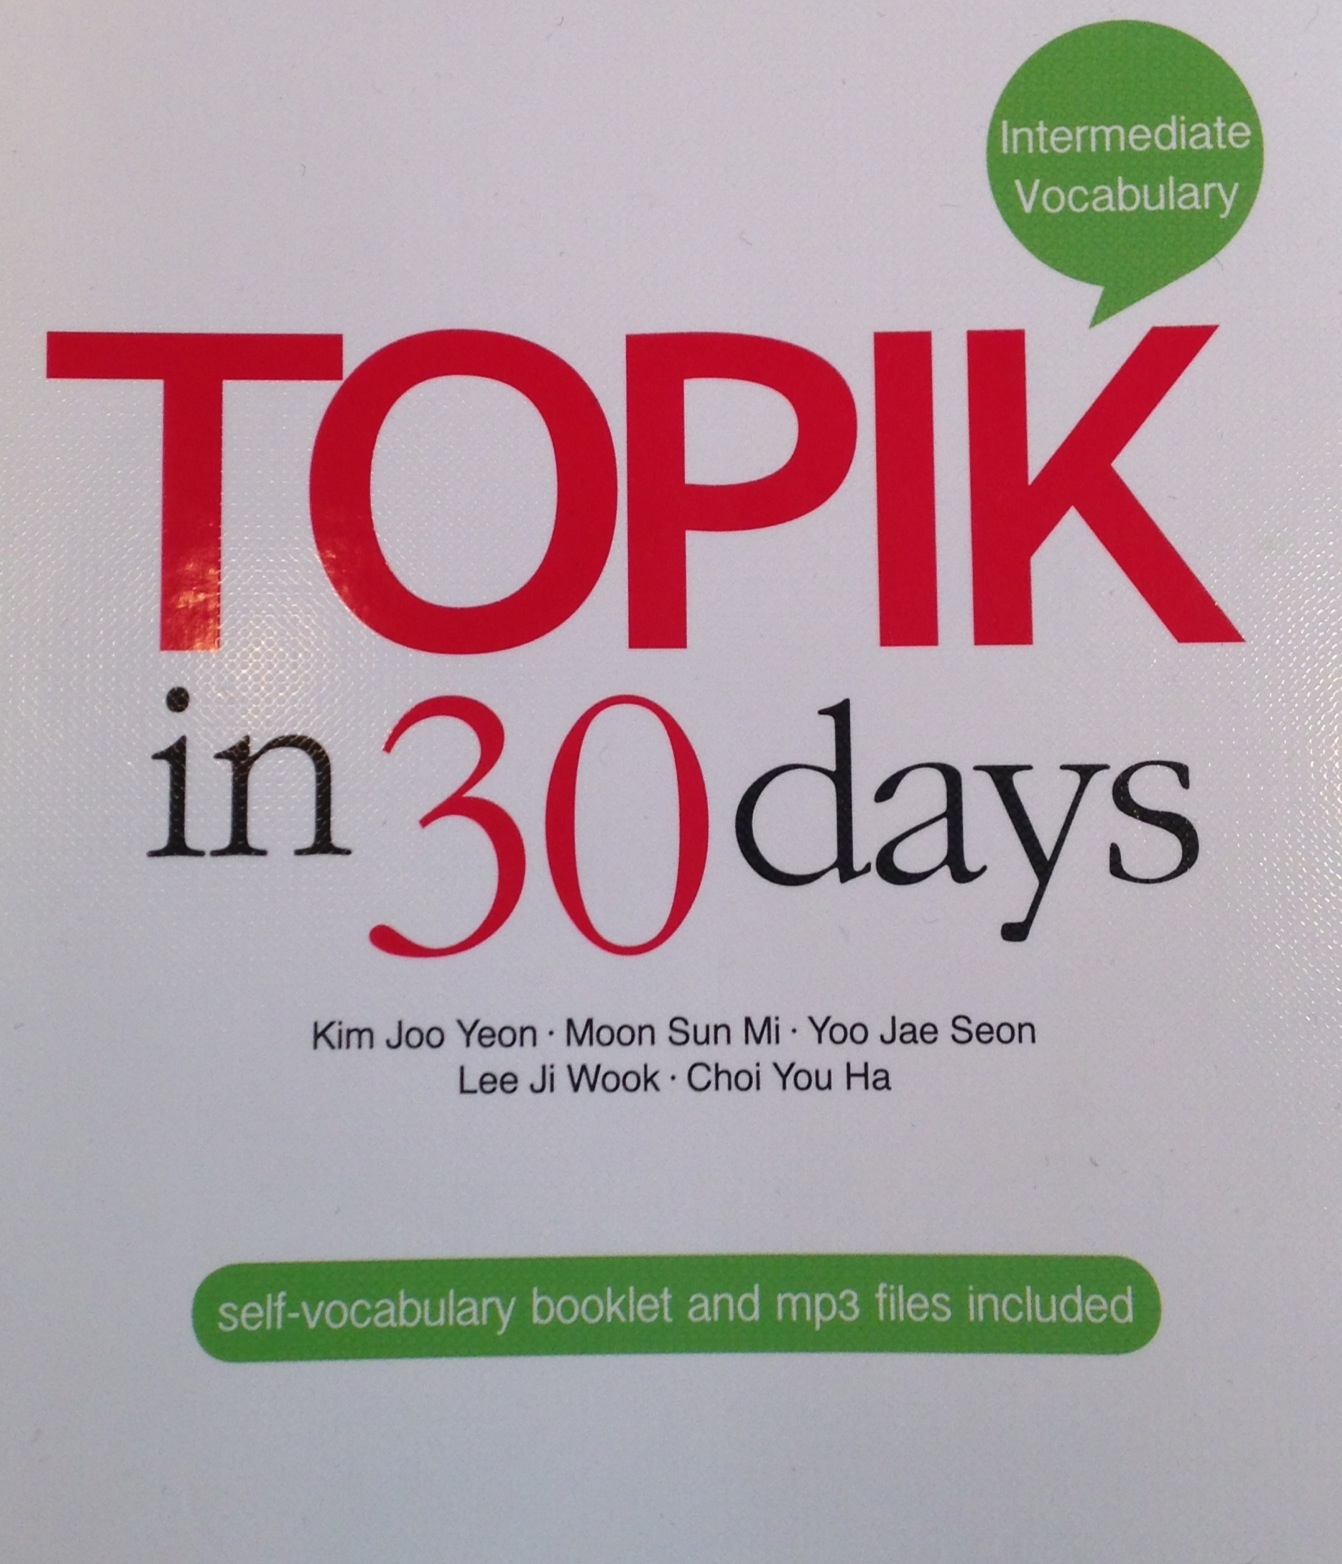 TOPIK in 30 Days+: Intermediate Vocabulary